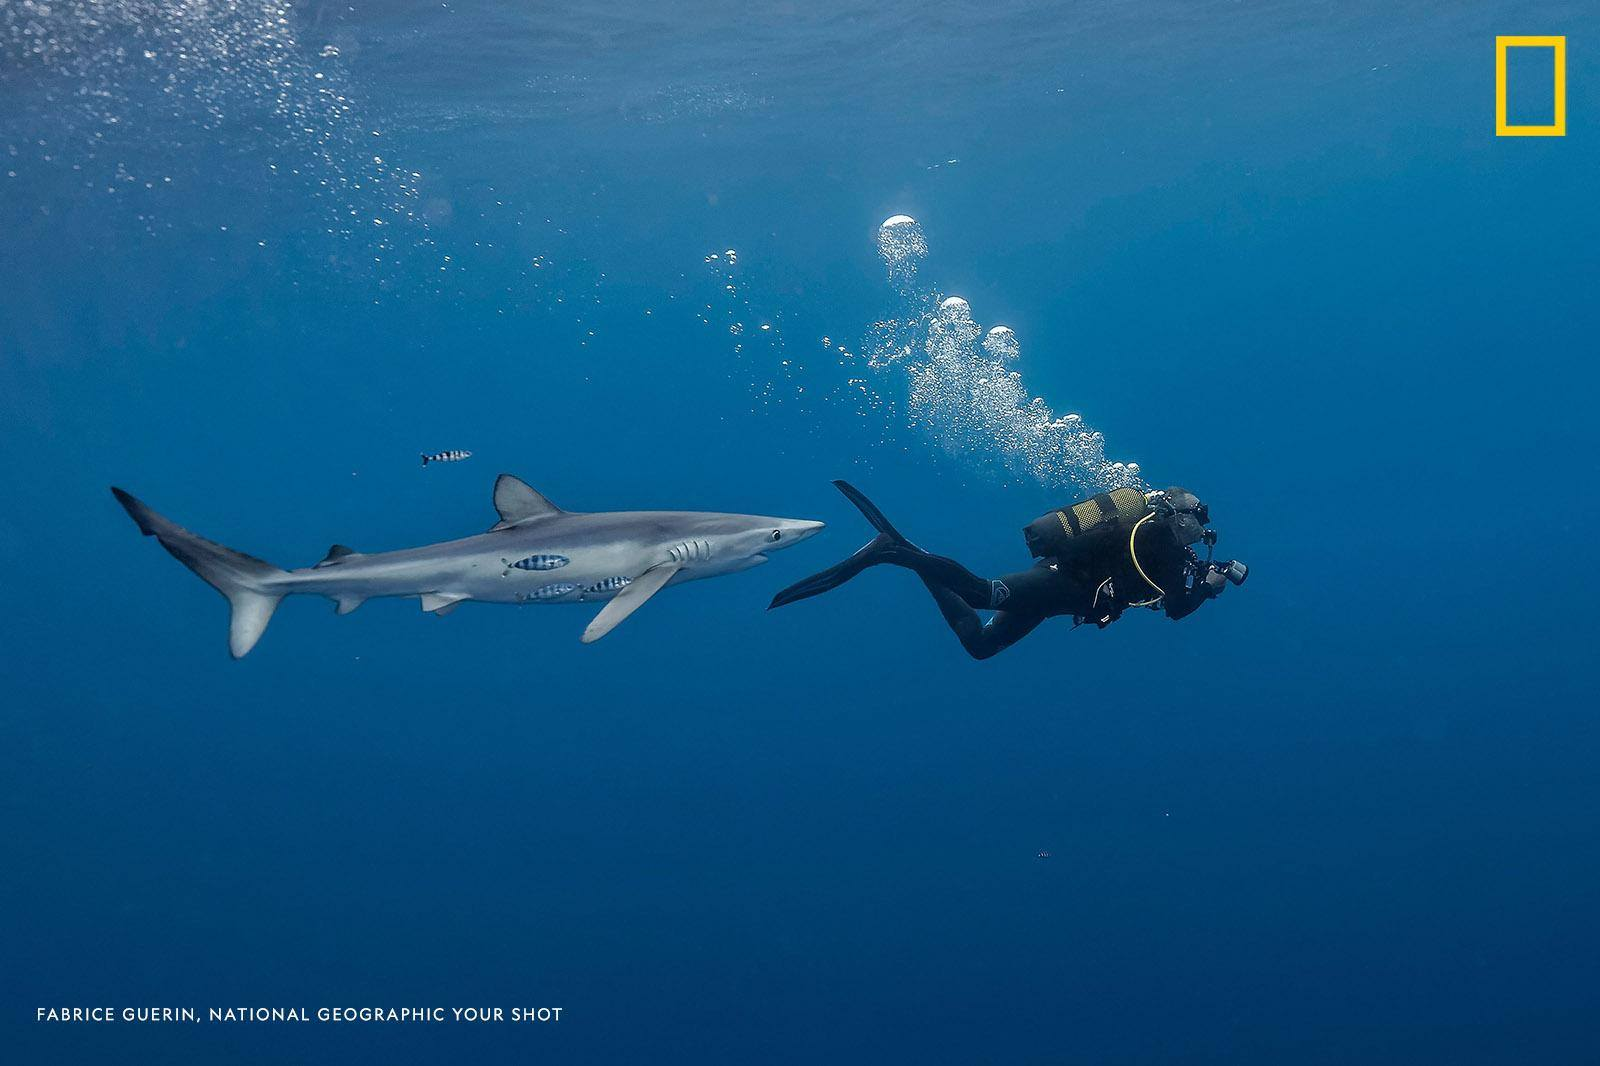 """When you take underwater pictures,"" writes photographer Fabrice Guerin ""sometimes you forget about the environment. This day, we looked for blue sharks when suddenly I saw one just behind my buddy. The blue shark was very curious and came very close, but there was no danger on this day."" https://on.natgeo.com/2Skwl3X"